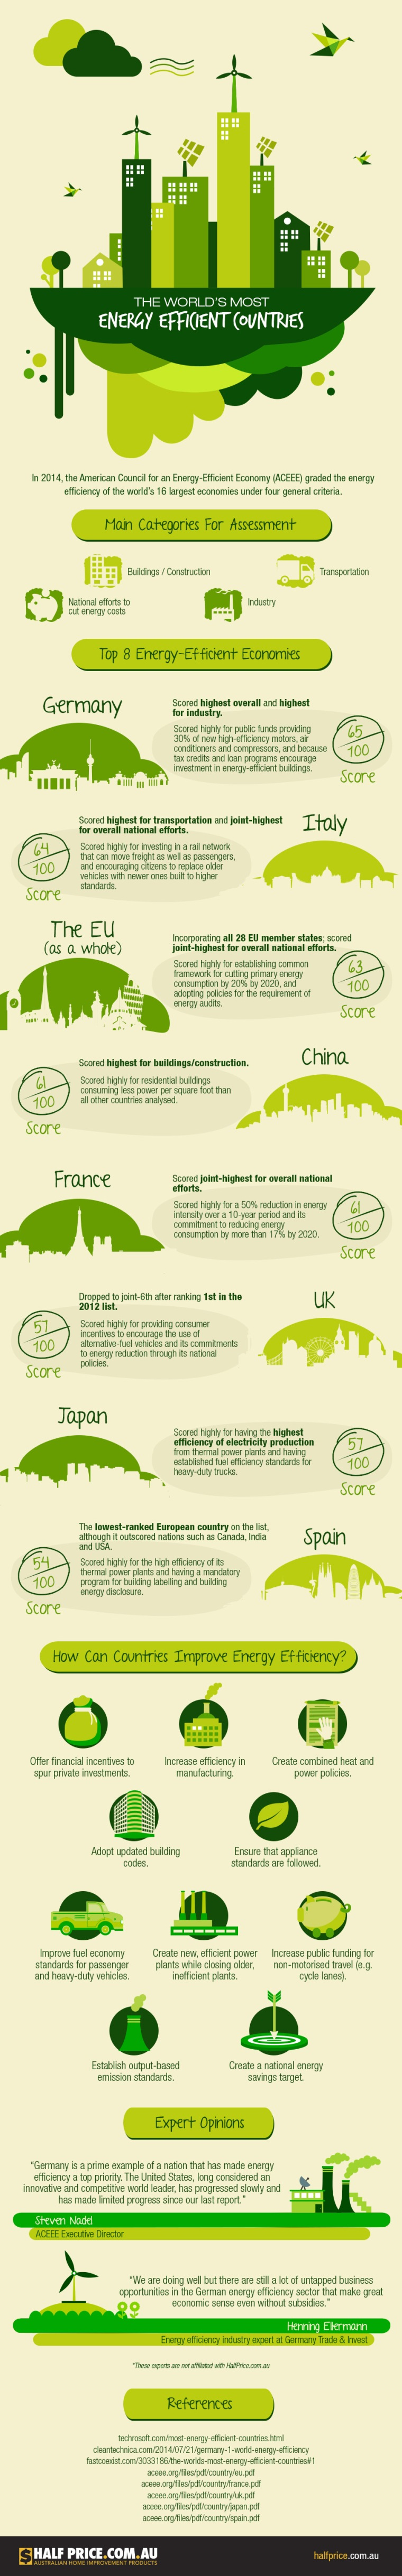 World's Most Energy Efficient Countries [Infographic] | ecogreenlove